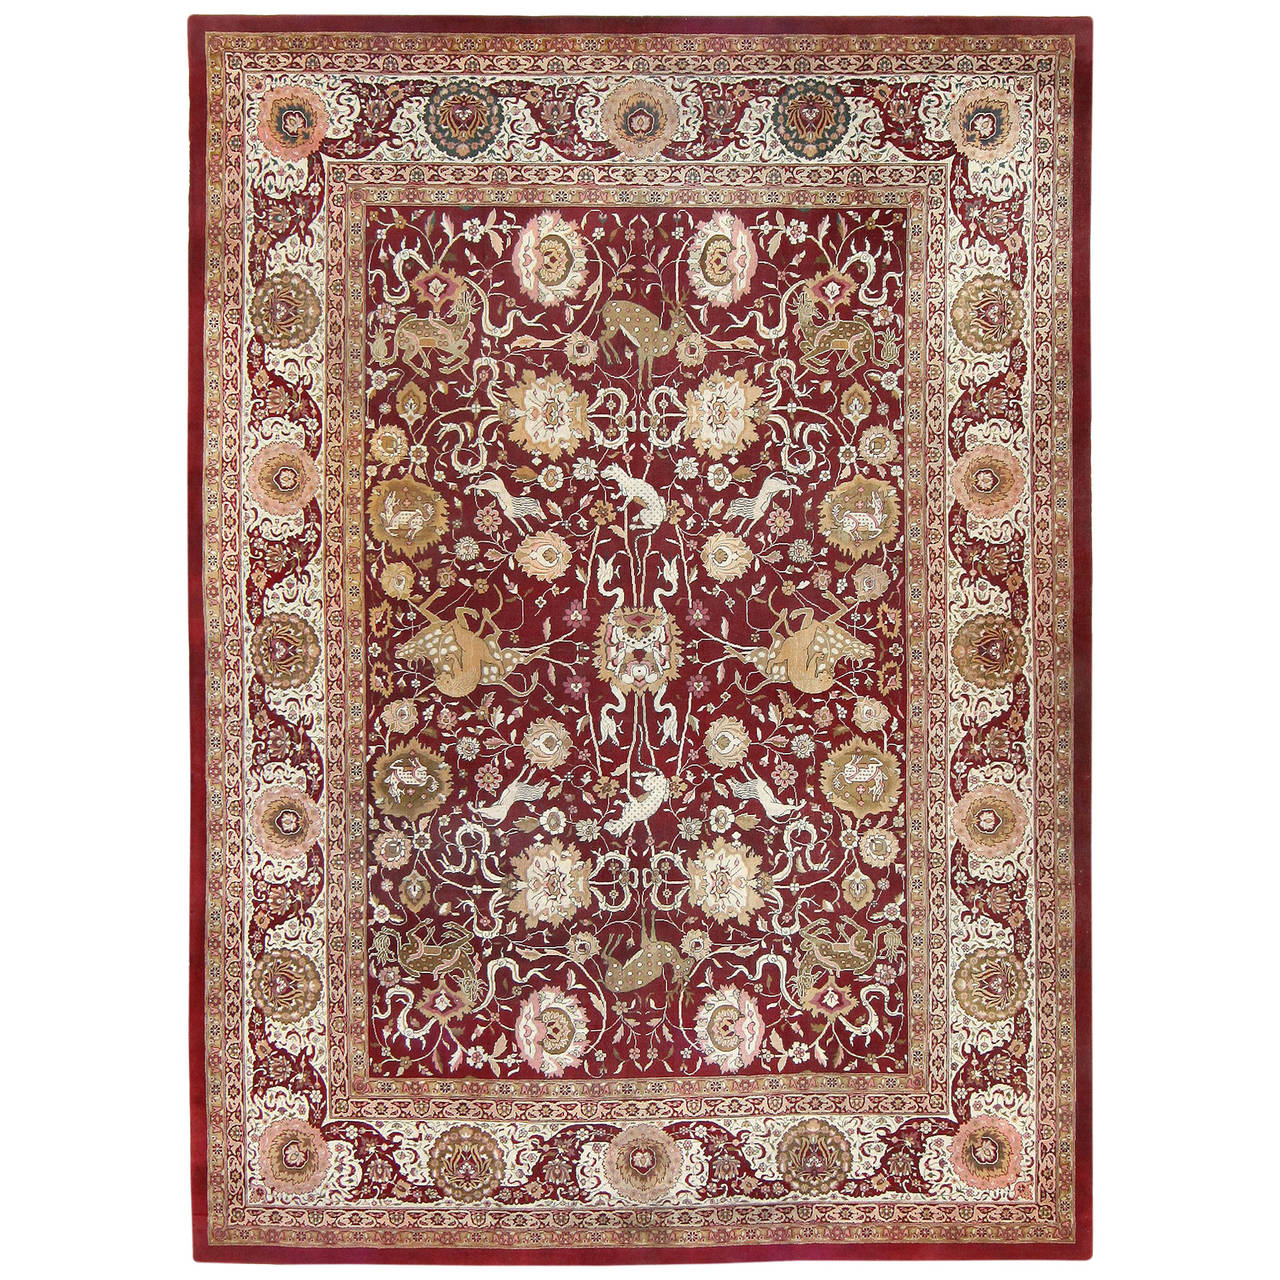 Animal Patterned Room Sized Antique Indian Agra Rug For